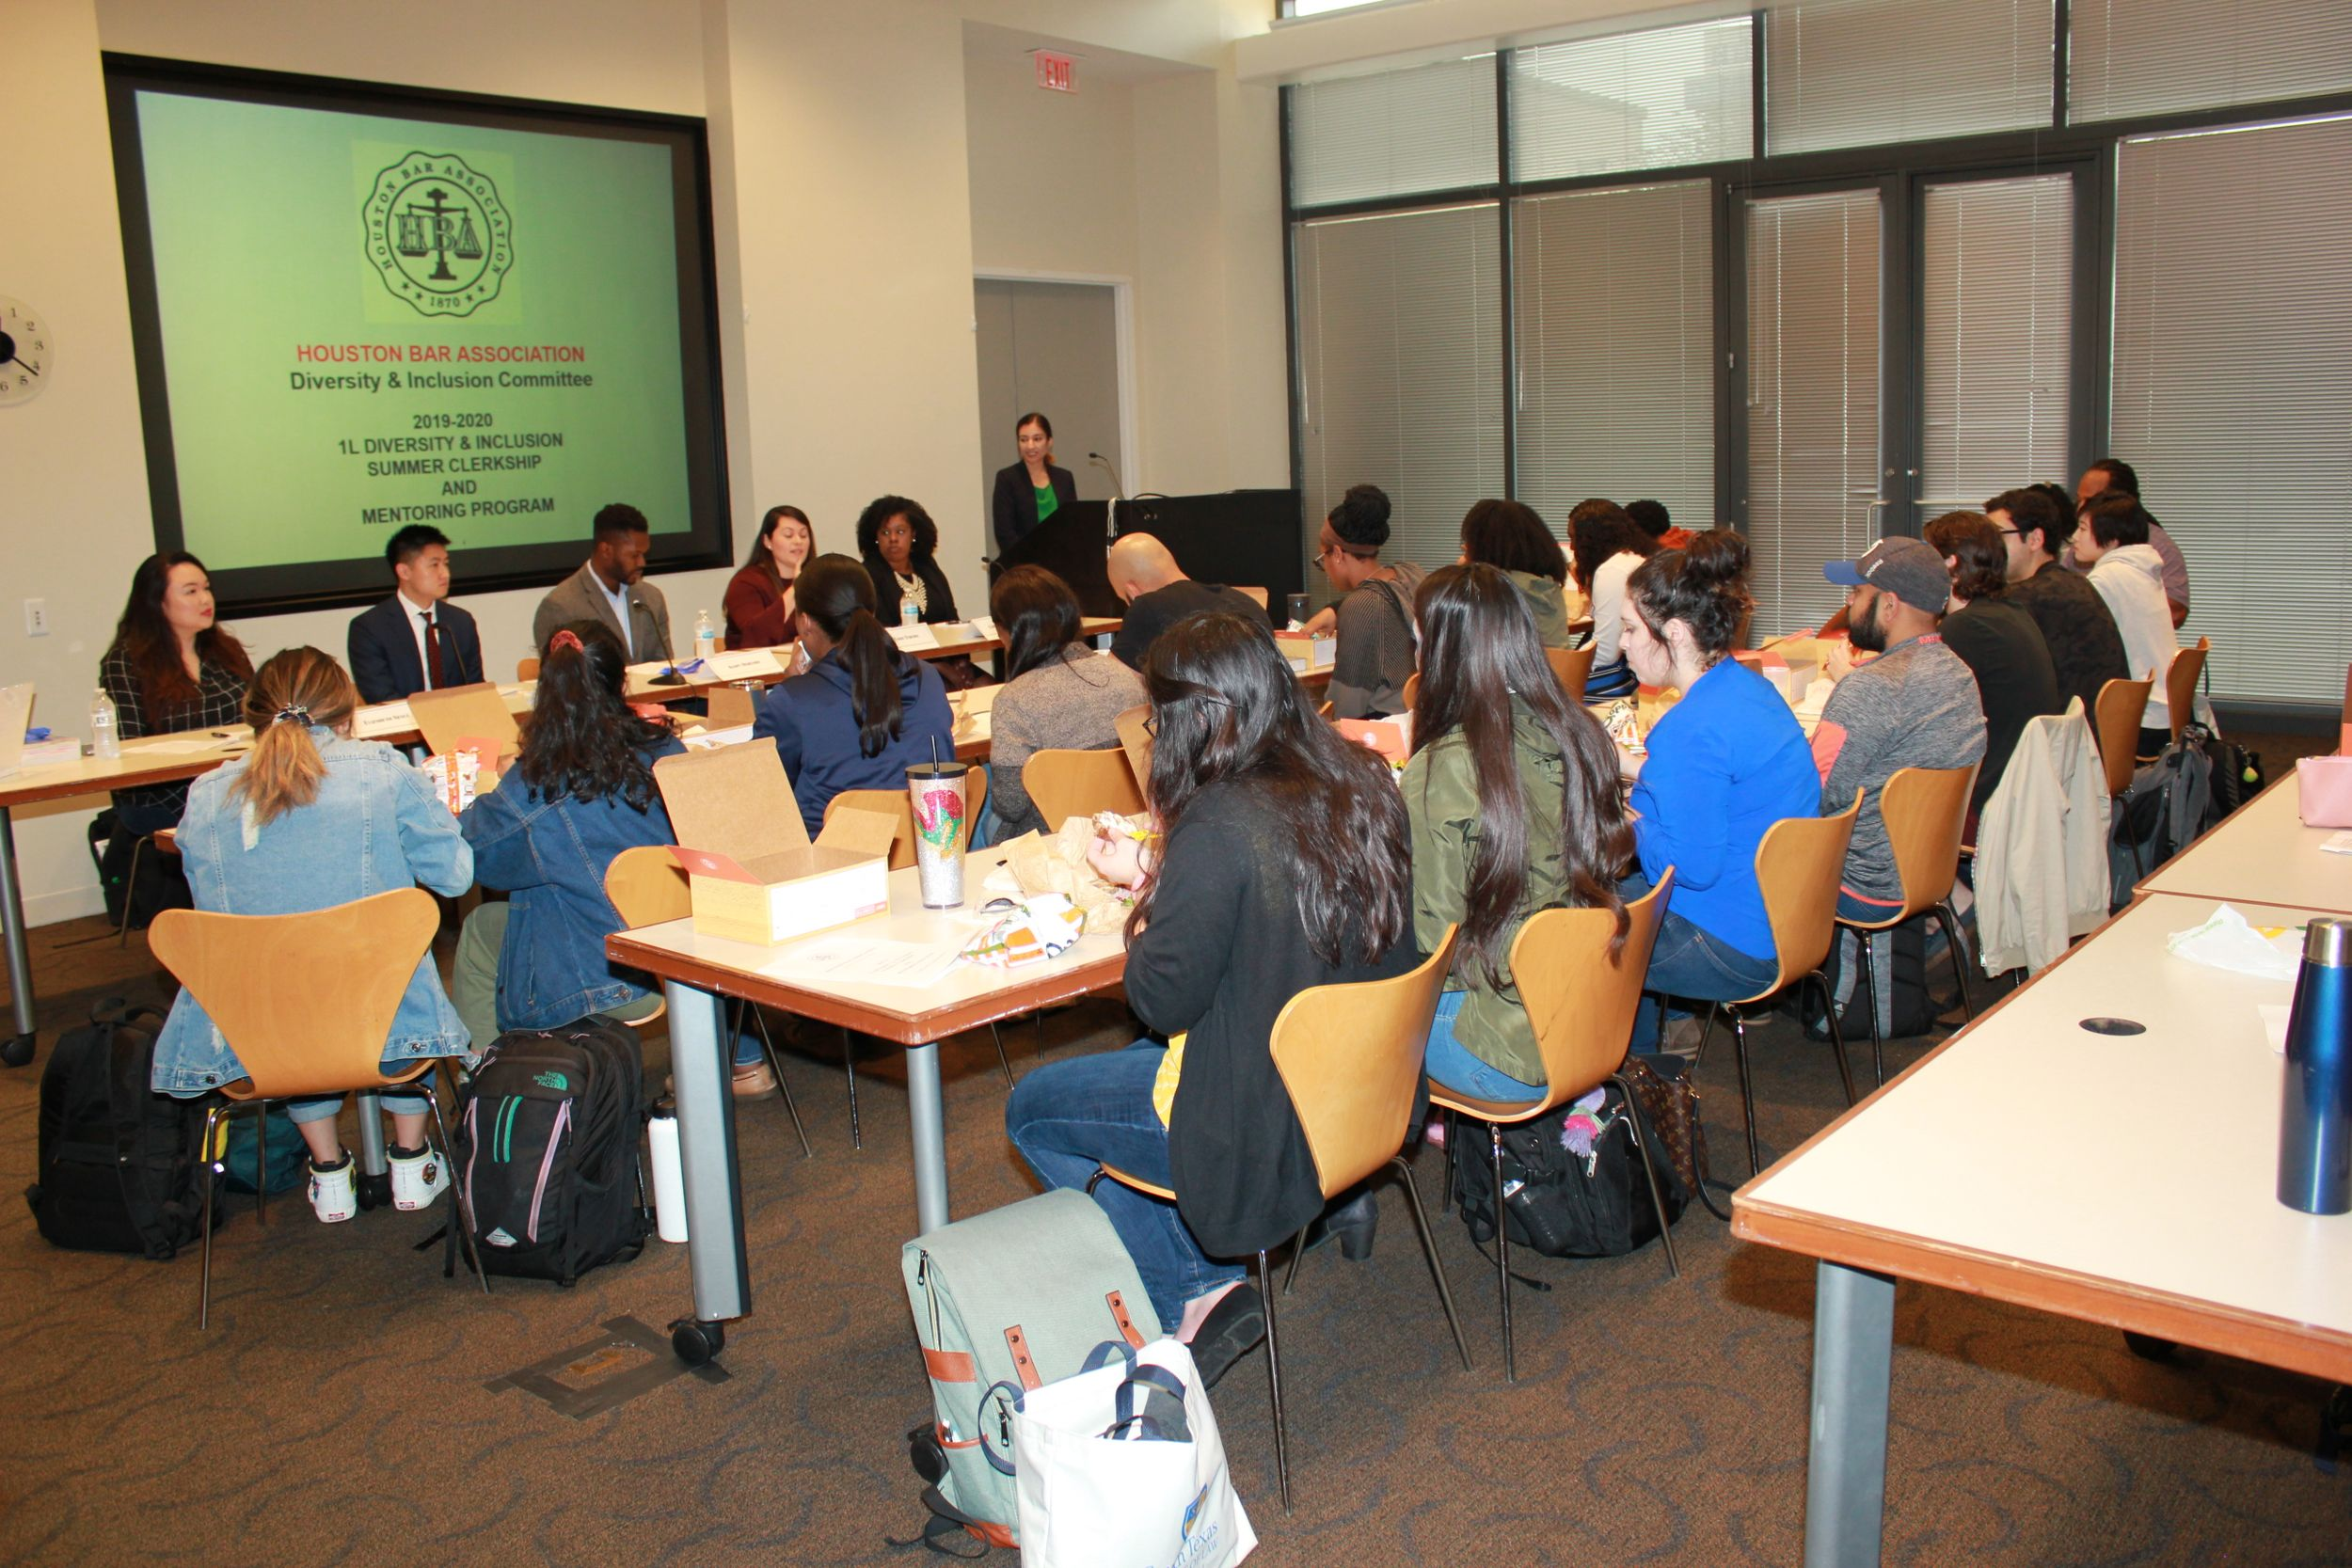 Students and presenters at the STCL session on October 29